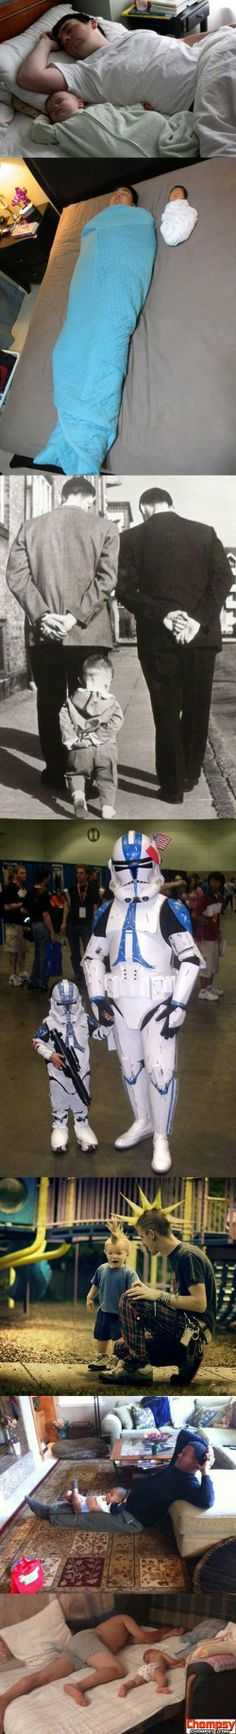 Funny Pictures Like father like son